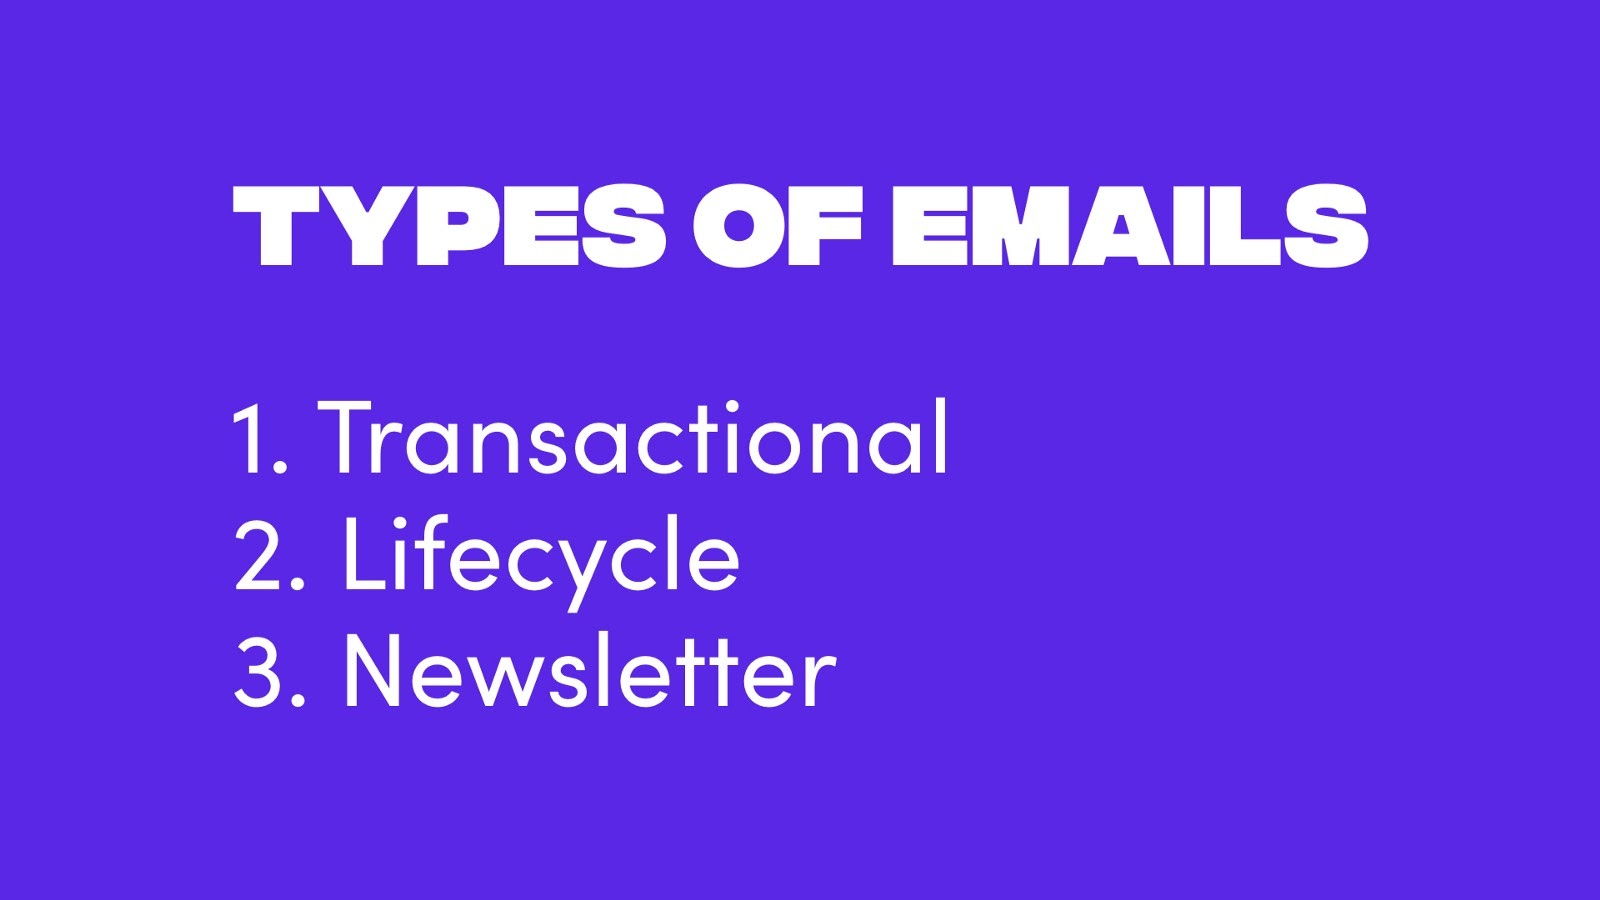 The 3 mails types of emails